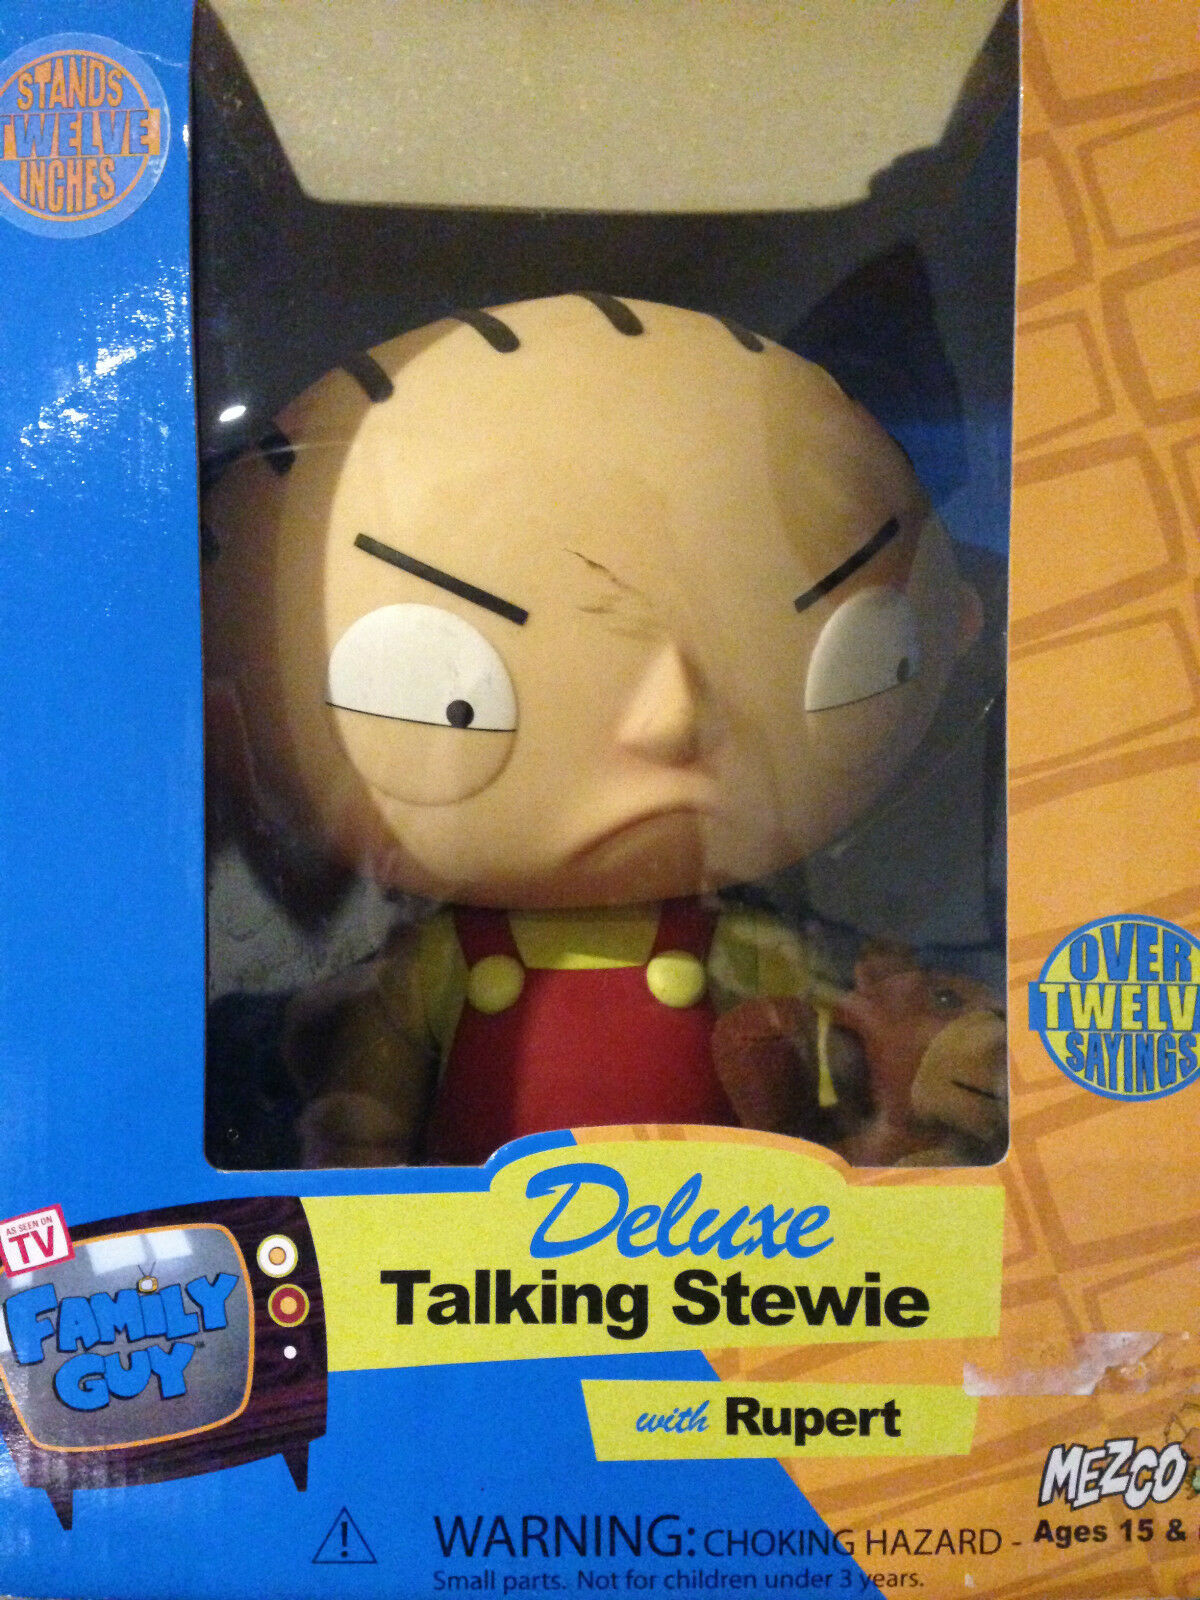 MEZCO FAMILY GUY DELUXE TALKING STEWIE & RUPERT 12  31CM TALL NEW *MARKED BOX*